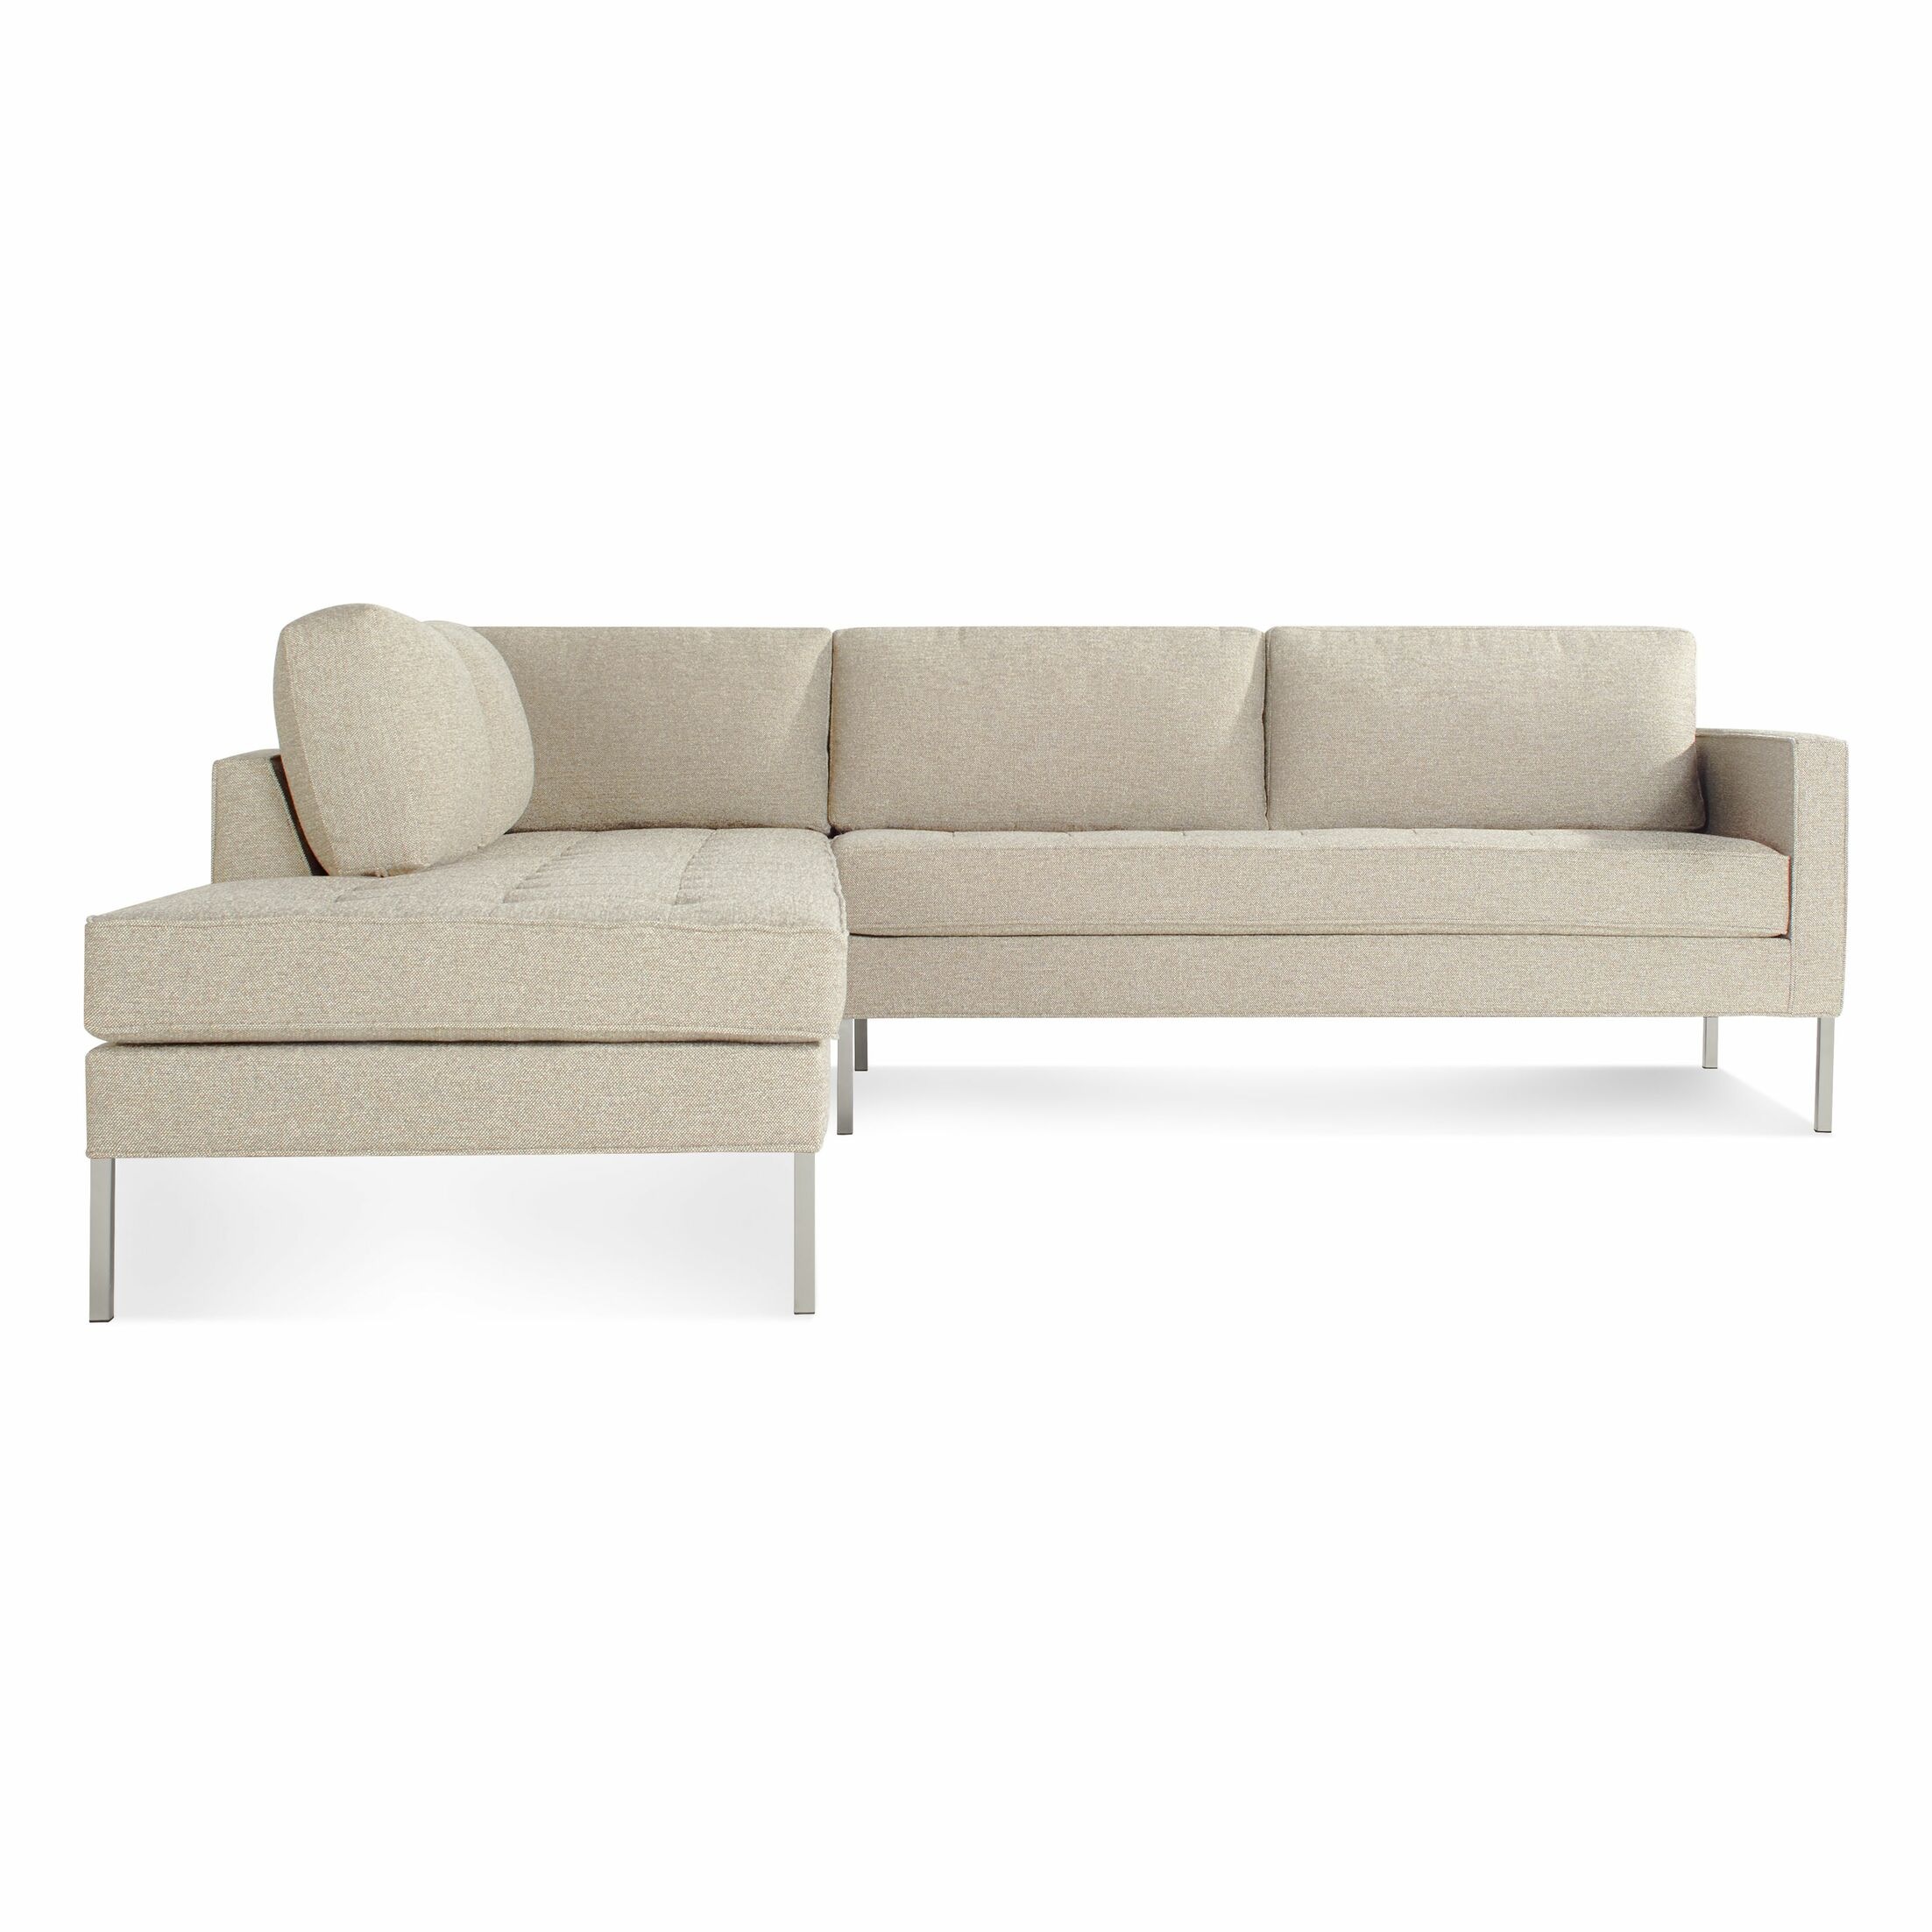 Paramount Sectional Sofa Body Fabric: Sanford Oatmeal, Leg Color: Stainless Steel, Sectional Orientation: Left Hand Facing